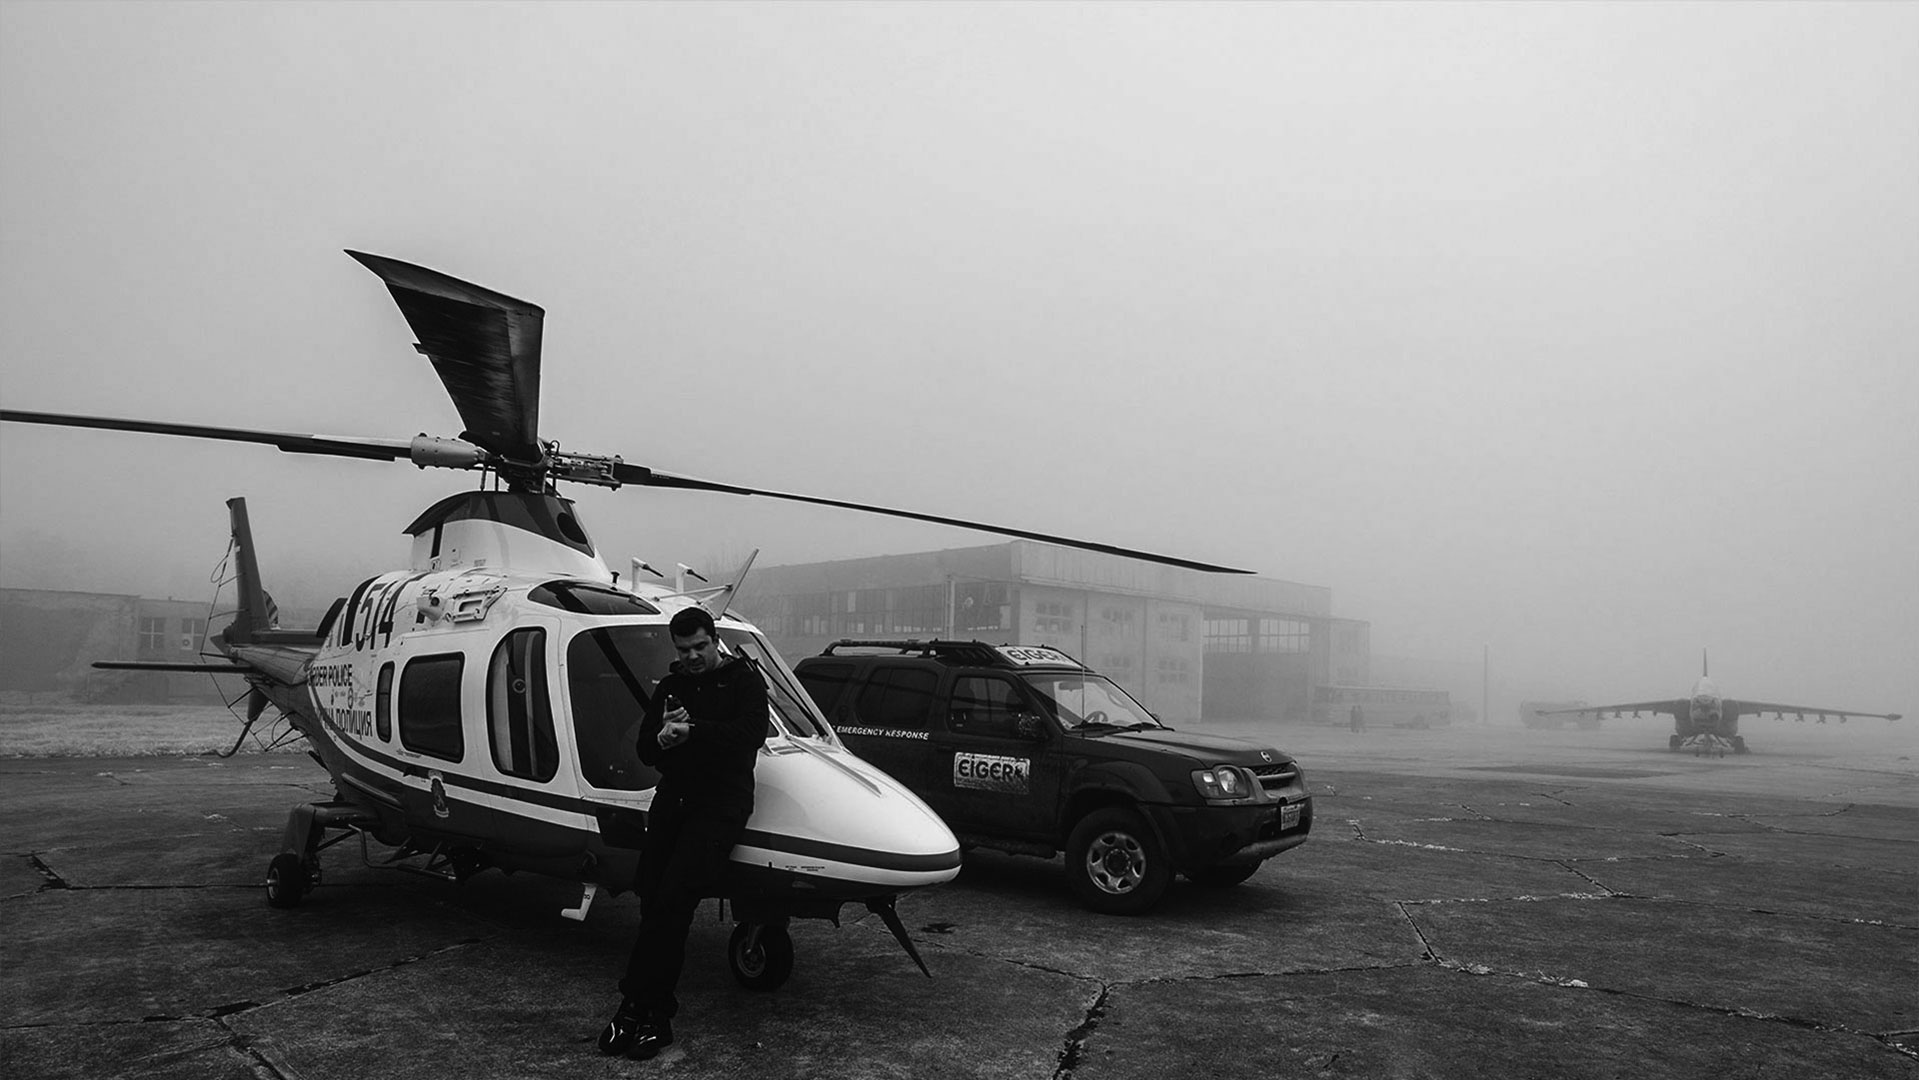 Emergency response for aerial rescue